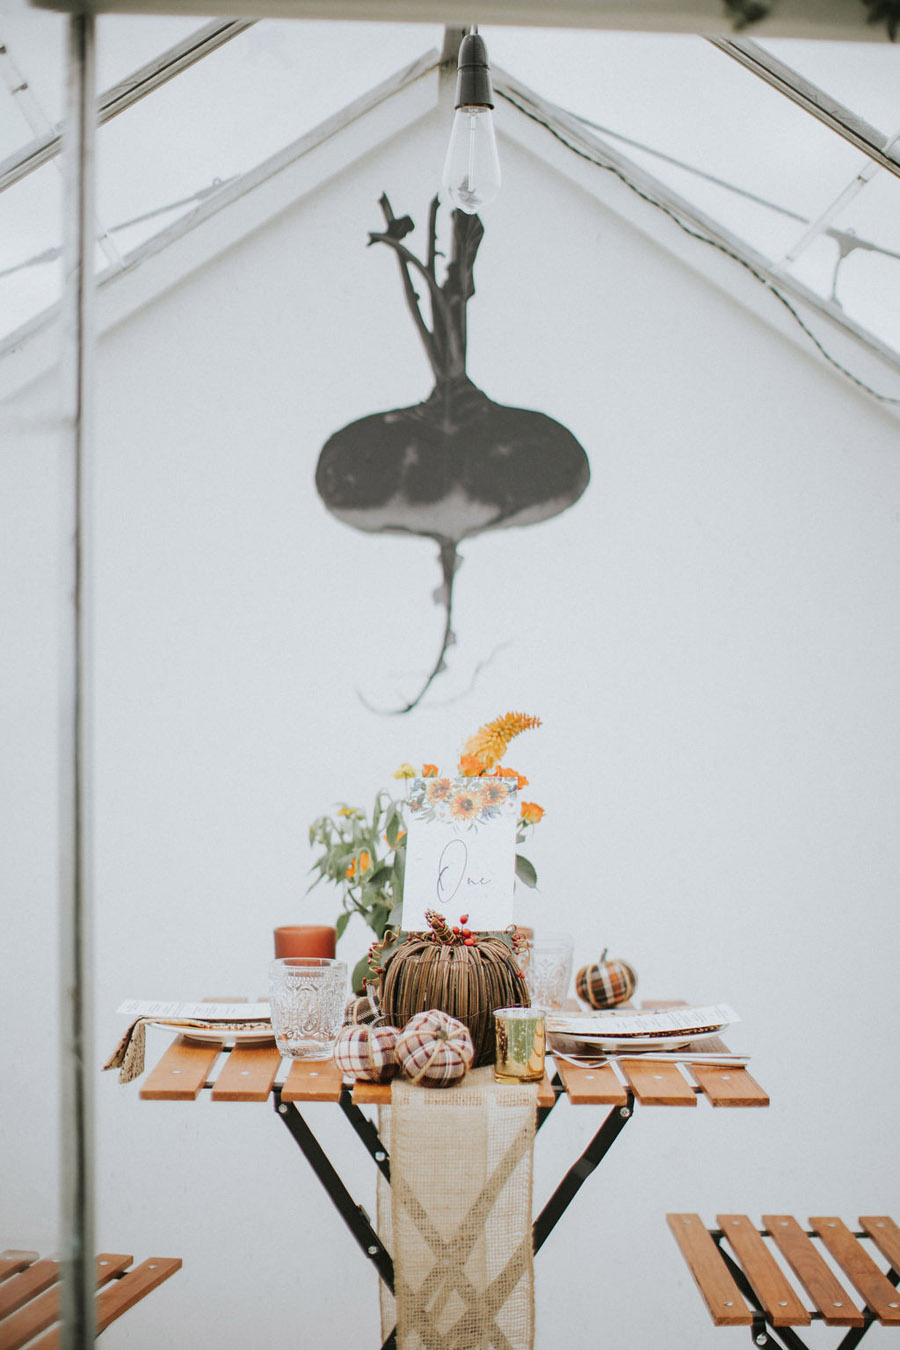 Cosy, snug and rustic wedding inspiration at The Scenic Supper venue (6)